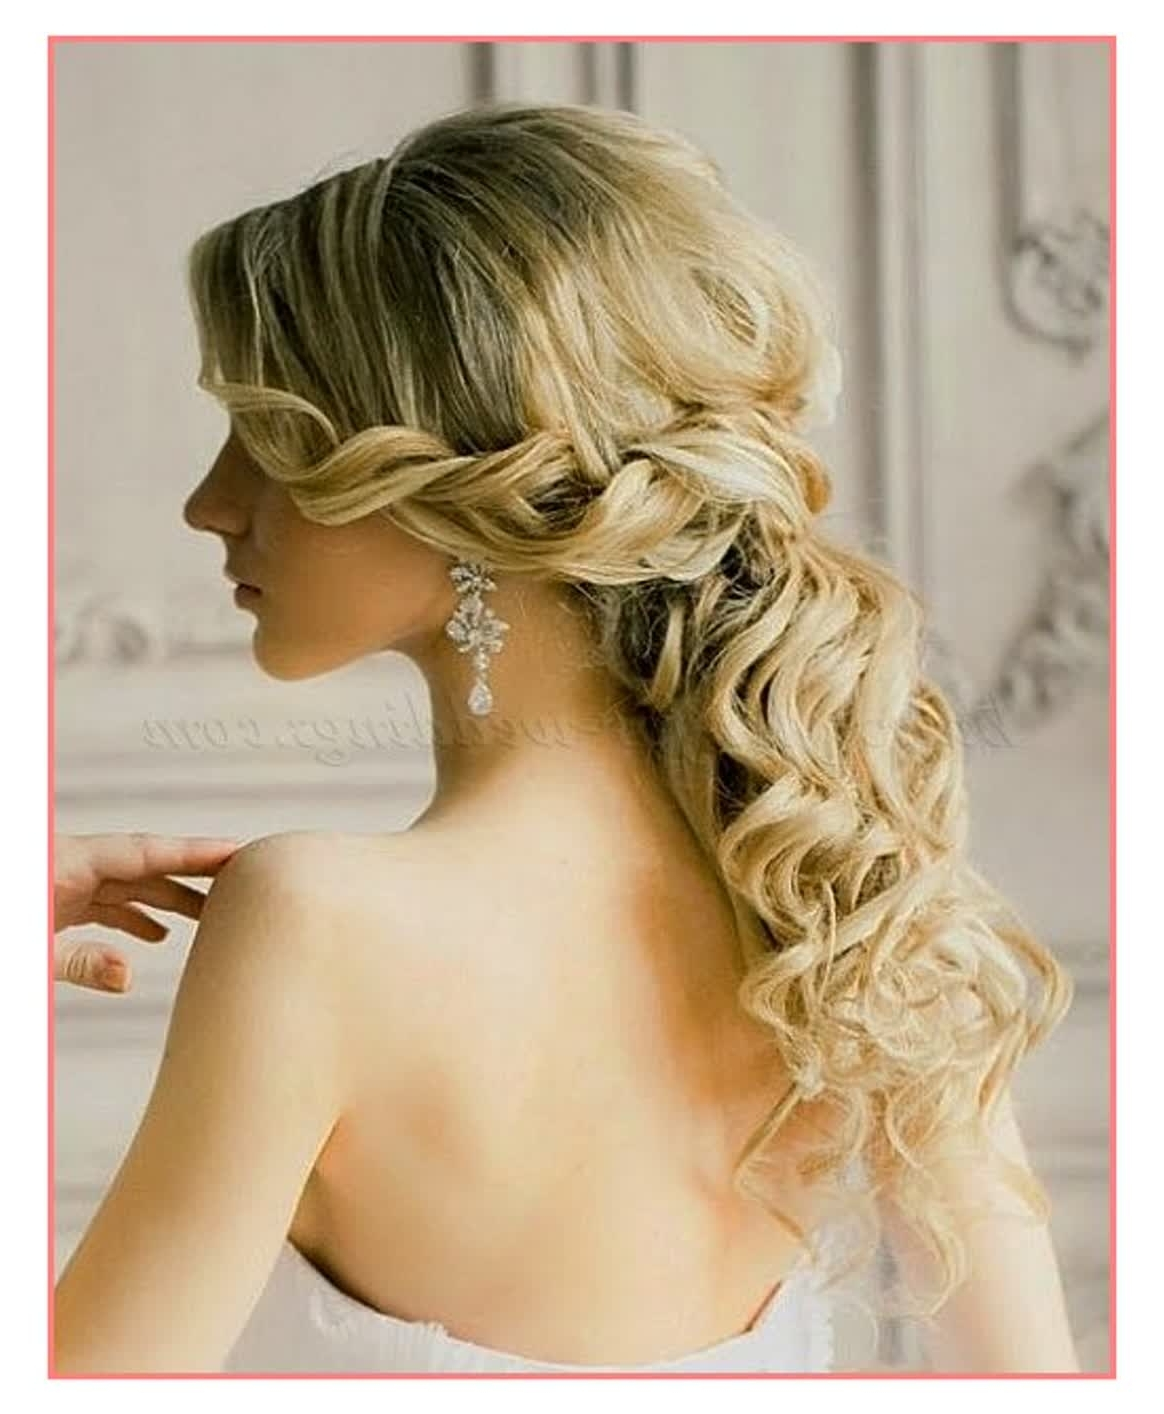 Best Ideas Half Up Half Down Hairstyles For Medium Length Hair For With Regard To Latest Half Up Half Down Wedding Hairstyles For Medium Length Hair With Fringe (View 1 of 15)